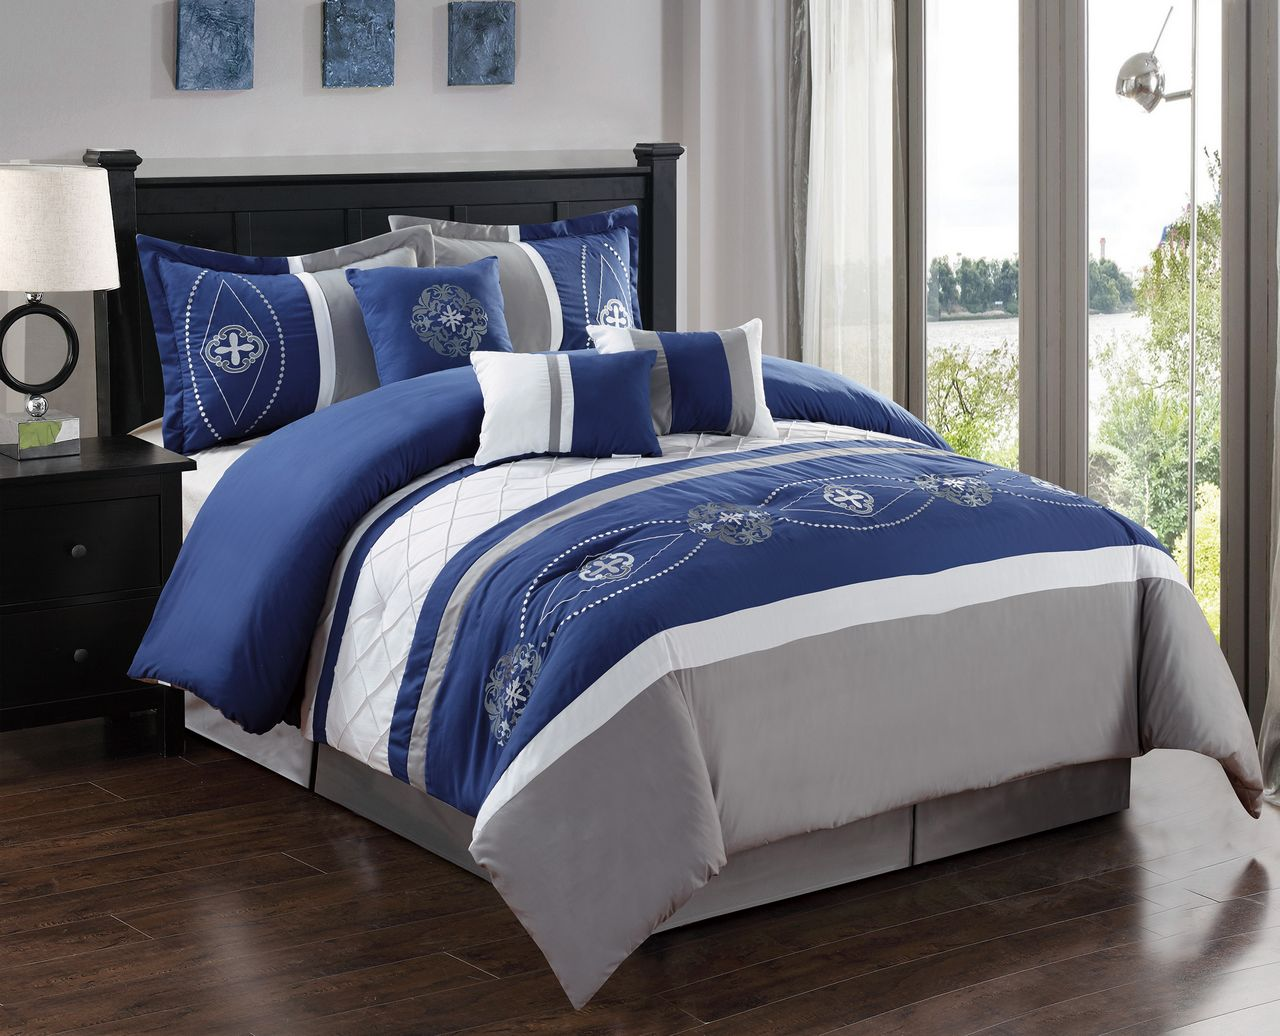 bed beyond buy bath king white comforter in sets set from pintuck